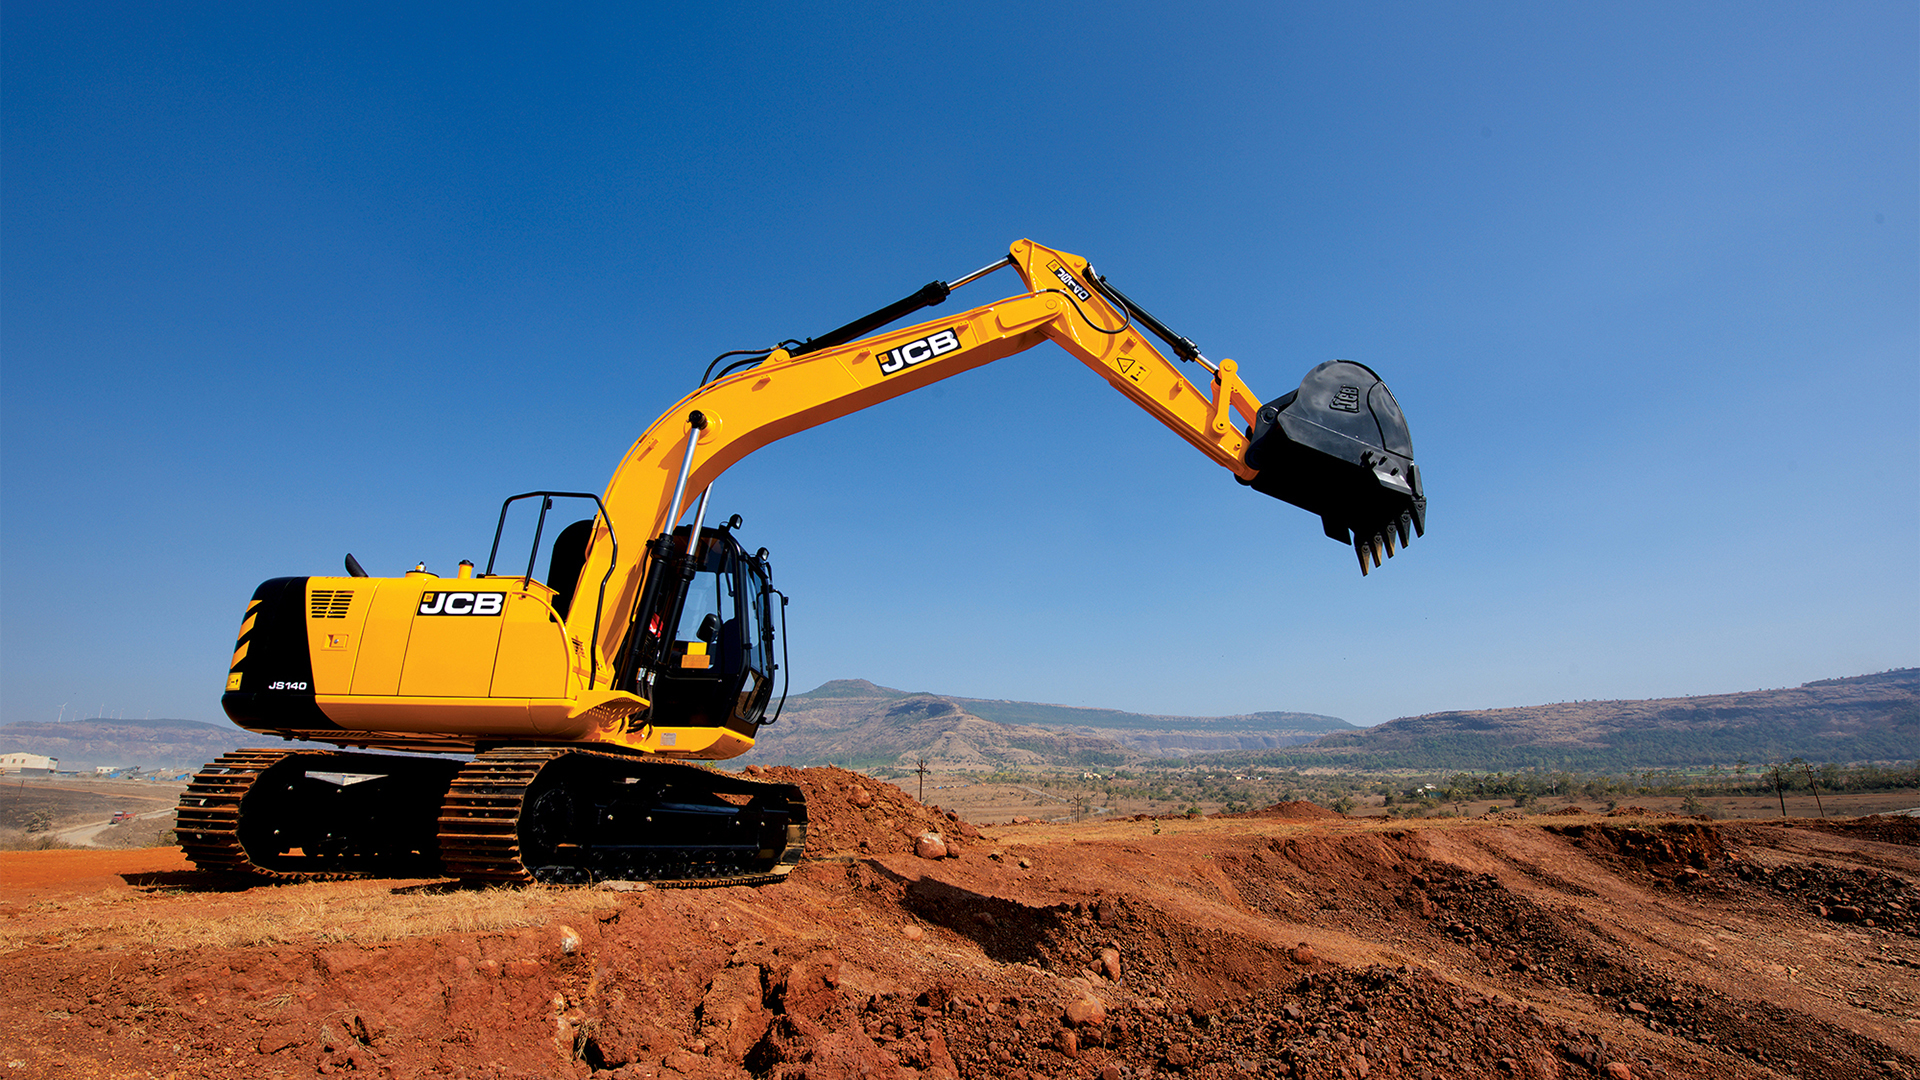 JCB Tracked Excavators Images JCB Excavator Images Wallpapers 1920x1080